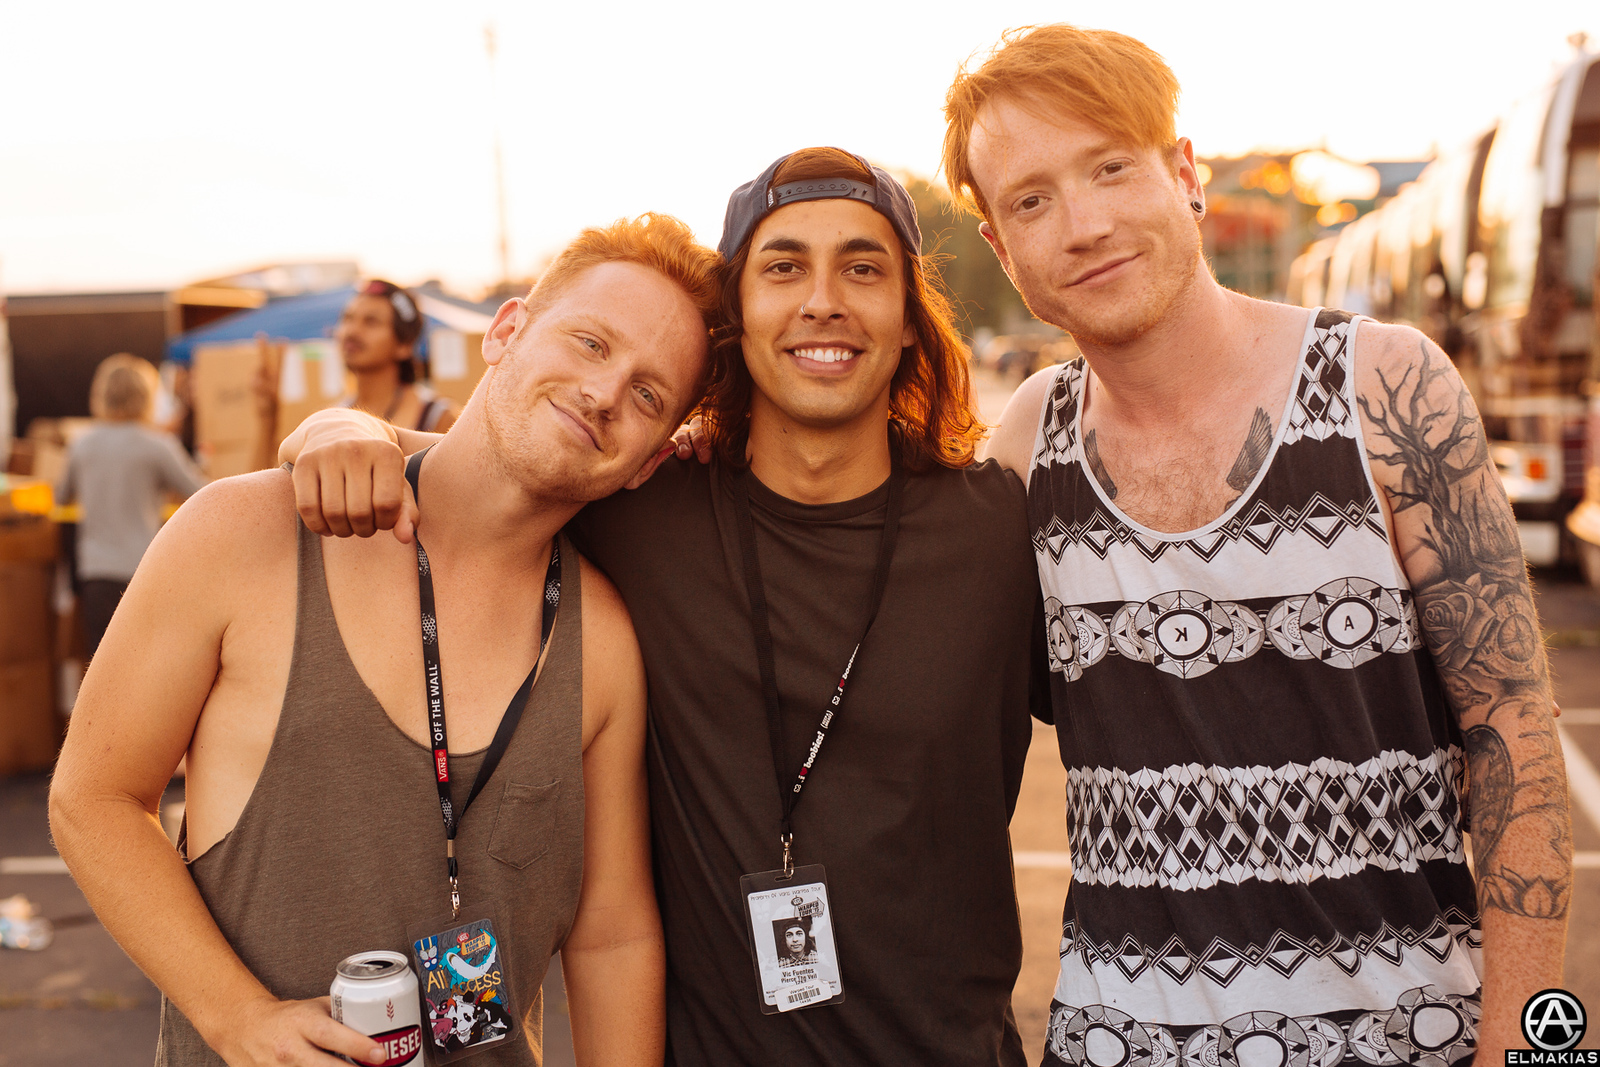 Eric Lambert of Blessthefall,Vic Fuentes, Mikey Chapman of Mallory Knox at Warped Tour 2015 by Adam Elmakias